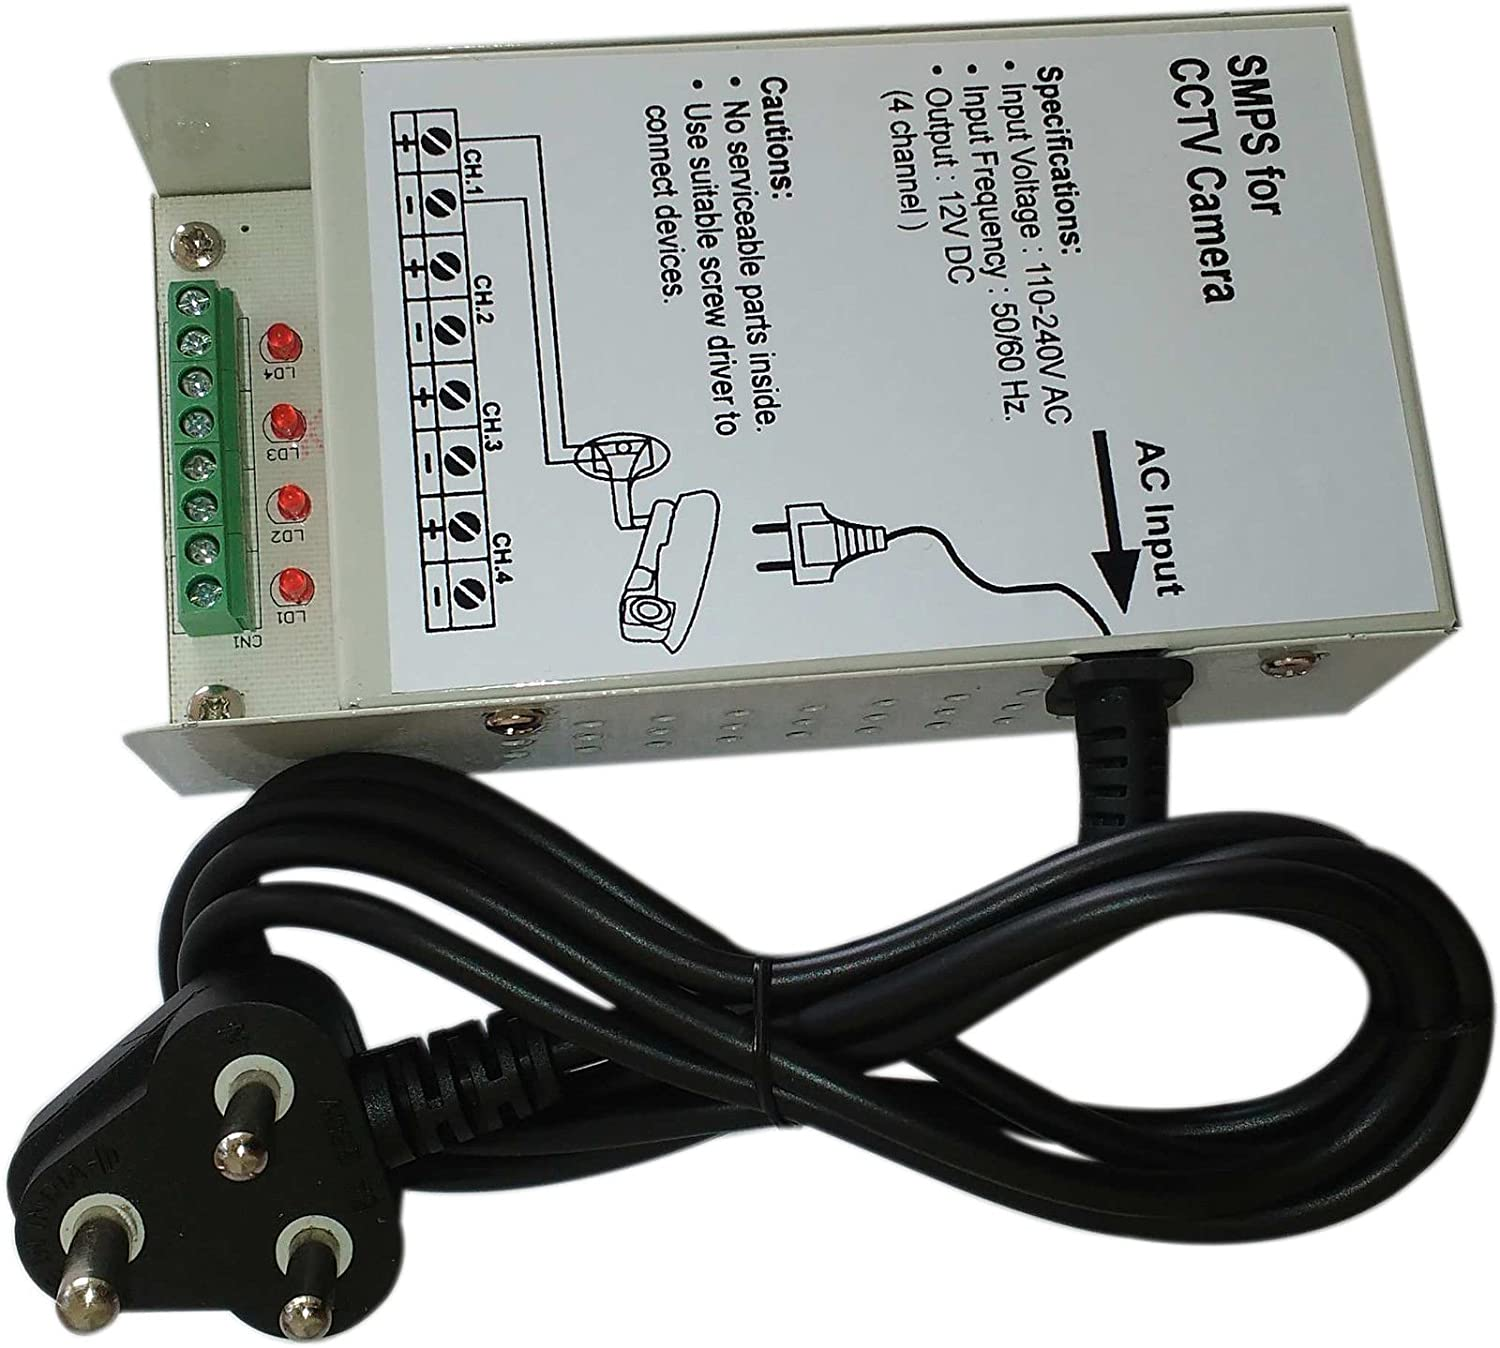 Amazon.in: Buy Bvslf 4 Channel Smps For CCTV / Surveillance / Spy ...